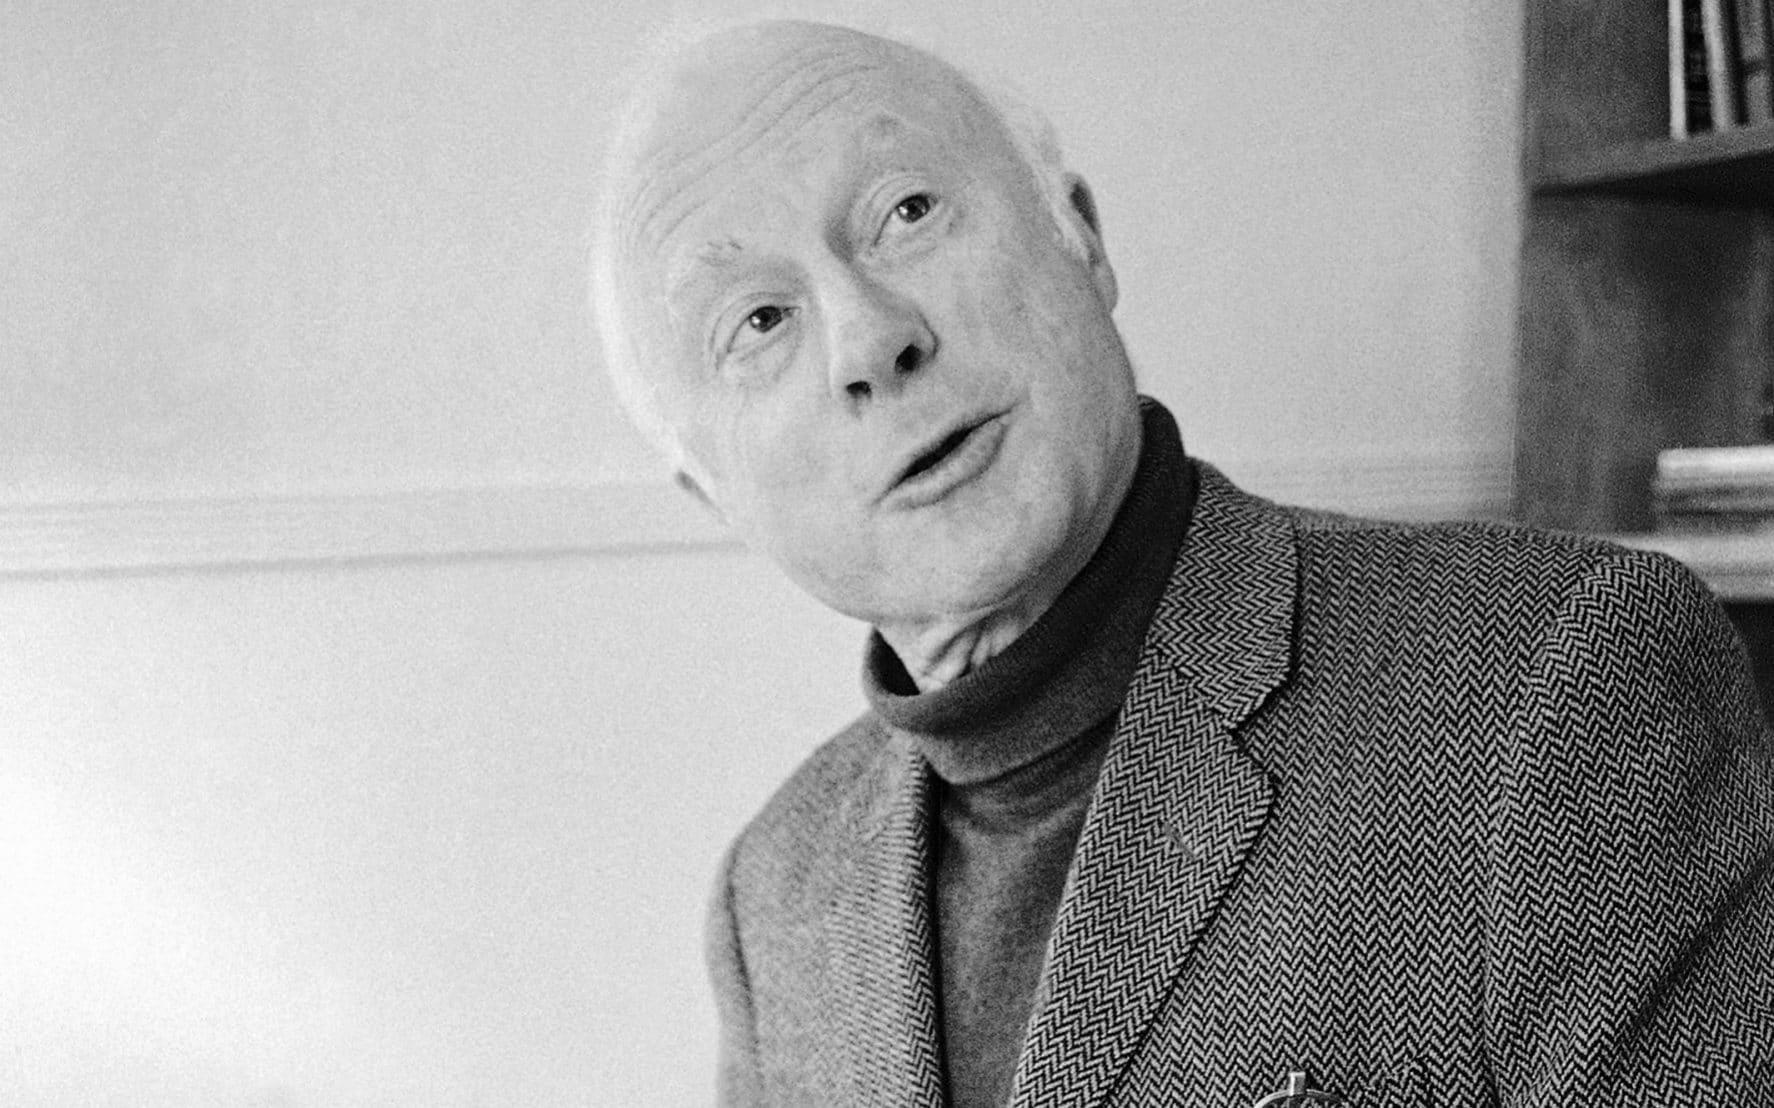 Norman Lloyd, veteran Hollywood star who worked with Welles and Hitchcock, dies aged 106